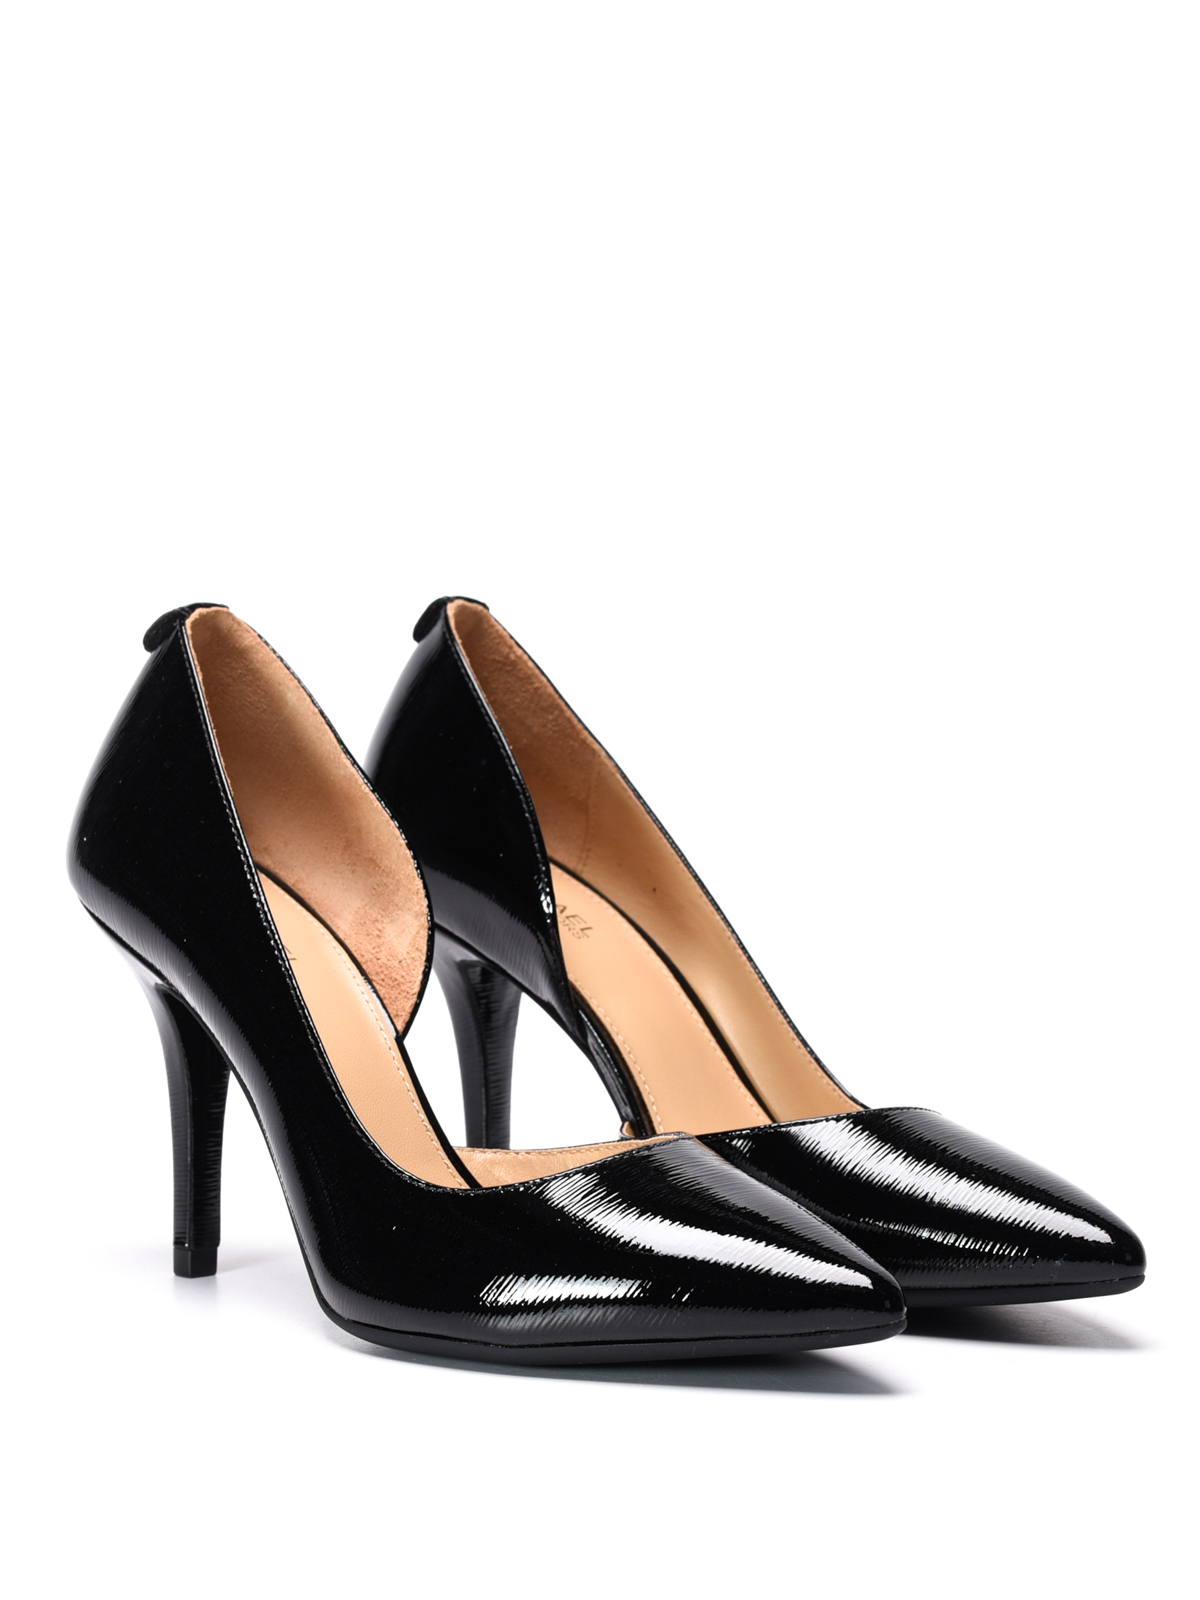 f8dc15651b51 MICHAEL KORS  court shoes online - Nathalie Flex patent leather pumps